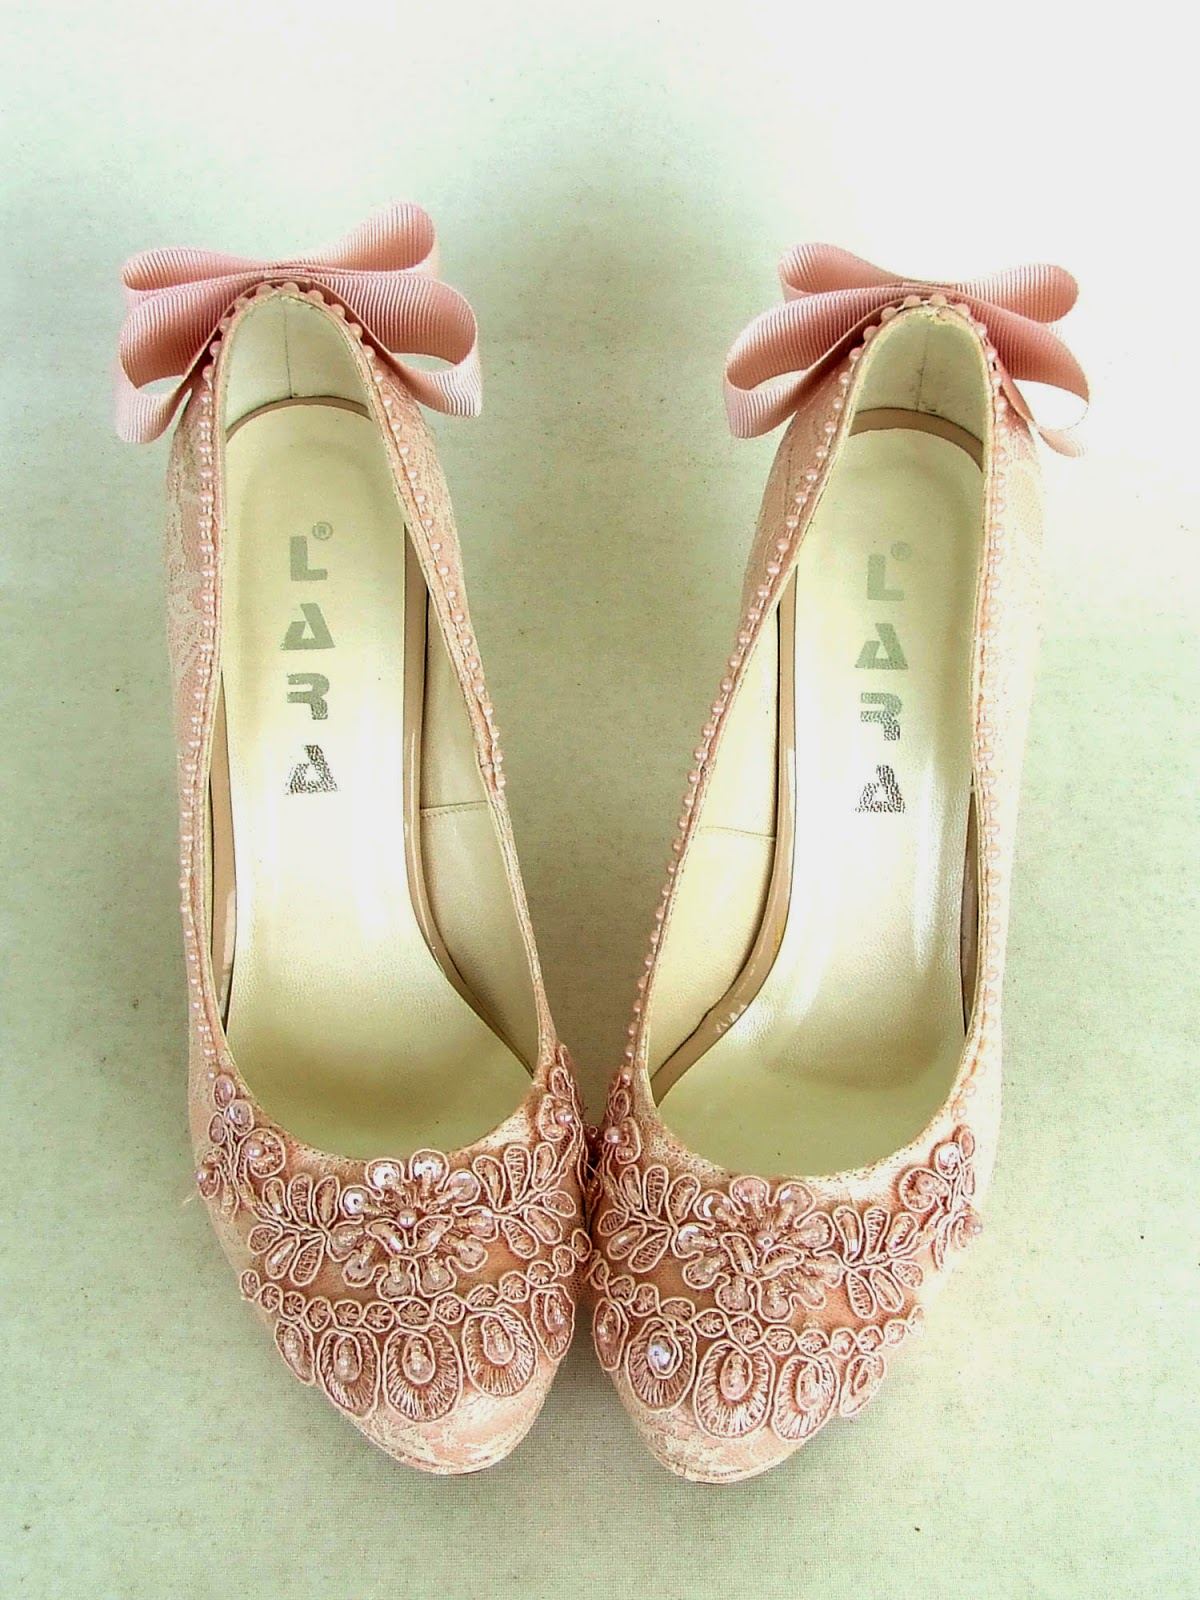 Kukla Shoes By Rana Ztok Vintage Blush Bridesmaids With Embroider Blue 12 Inchi New Embroidered Lace Have Just Come Out From The Atelier Pink Bridal Create A Romanticvintage Look Yeni Ilemeli Dantel Ayakkablar